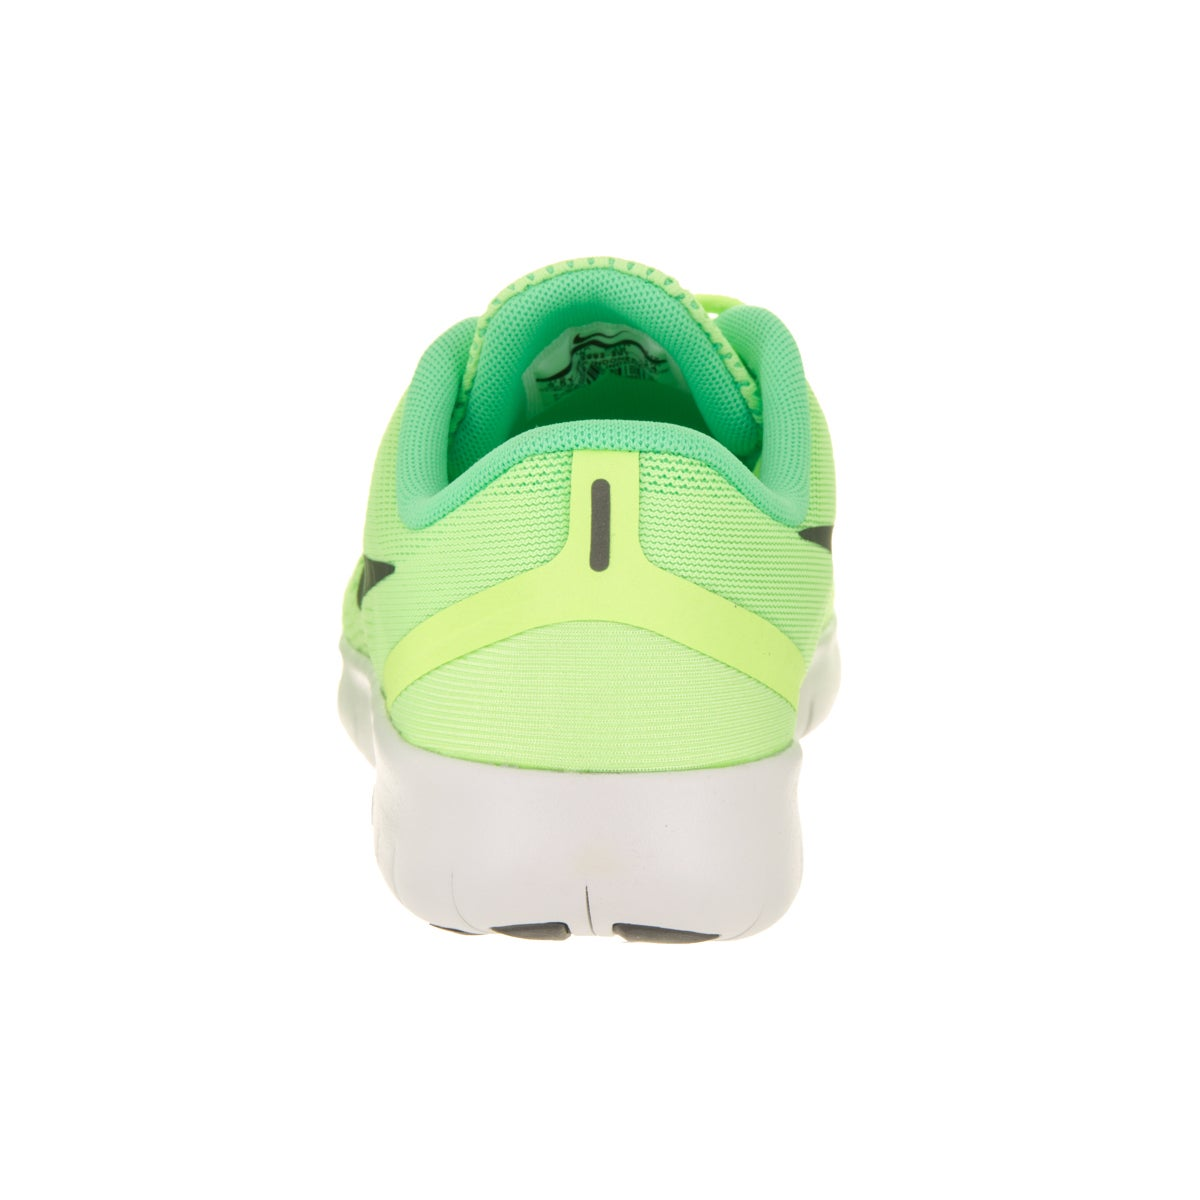 4201cb36b2950 Shop Nike Kid s Free Rn (GS) Green Running Shoes - Free Shipping Today -  Overstock - 14532243